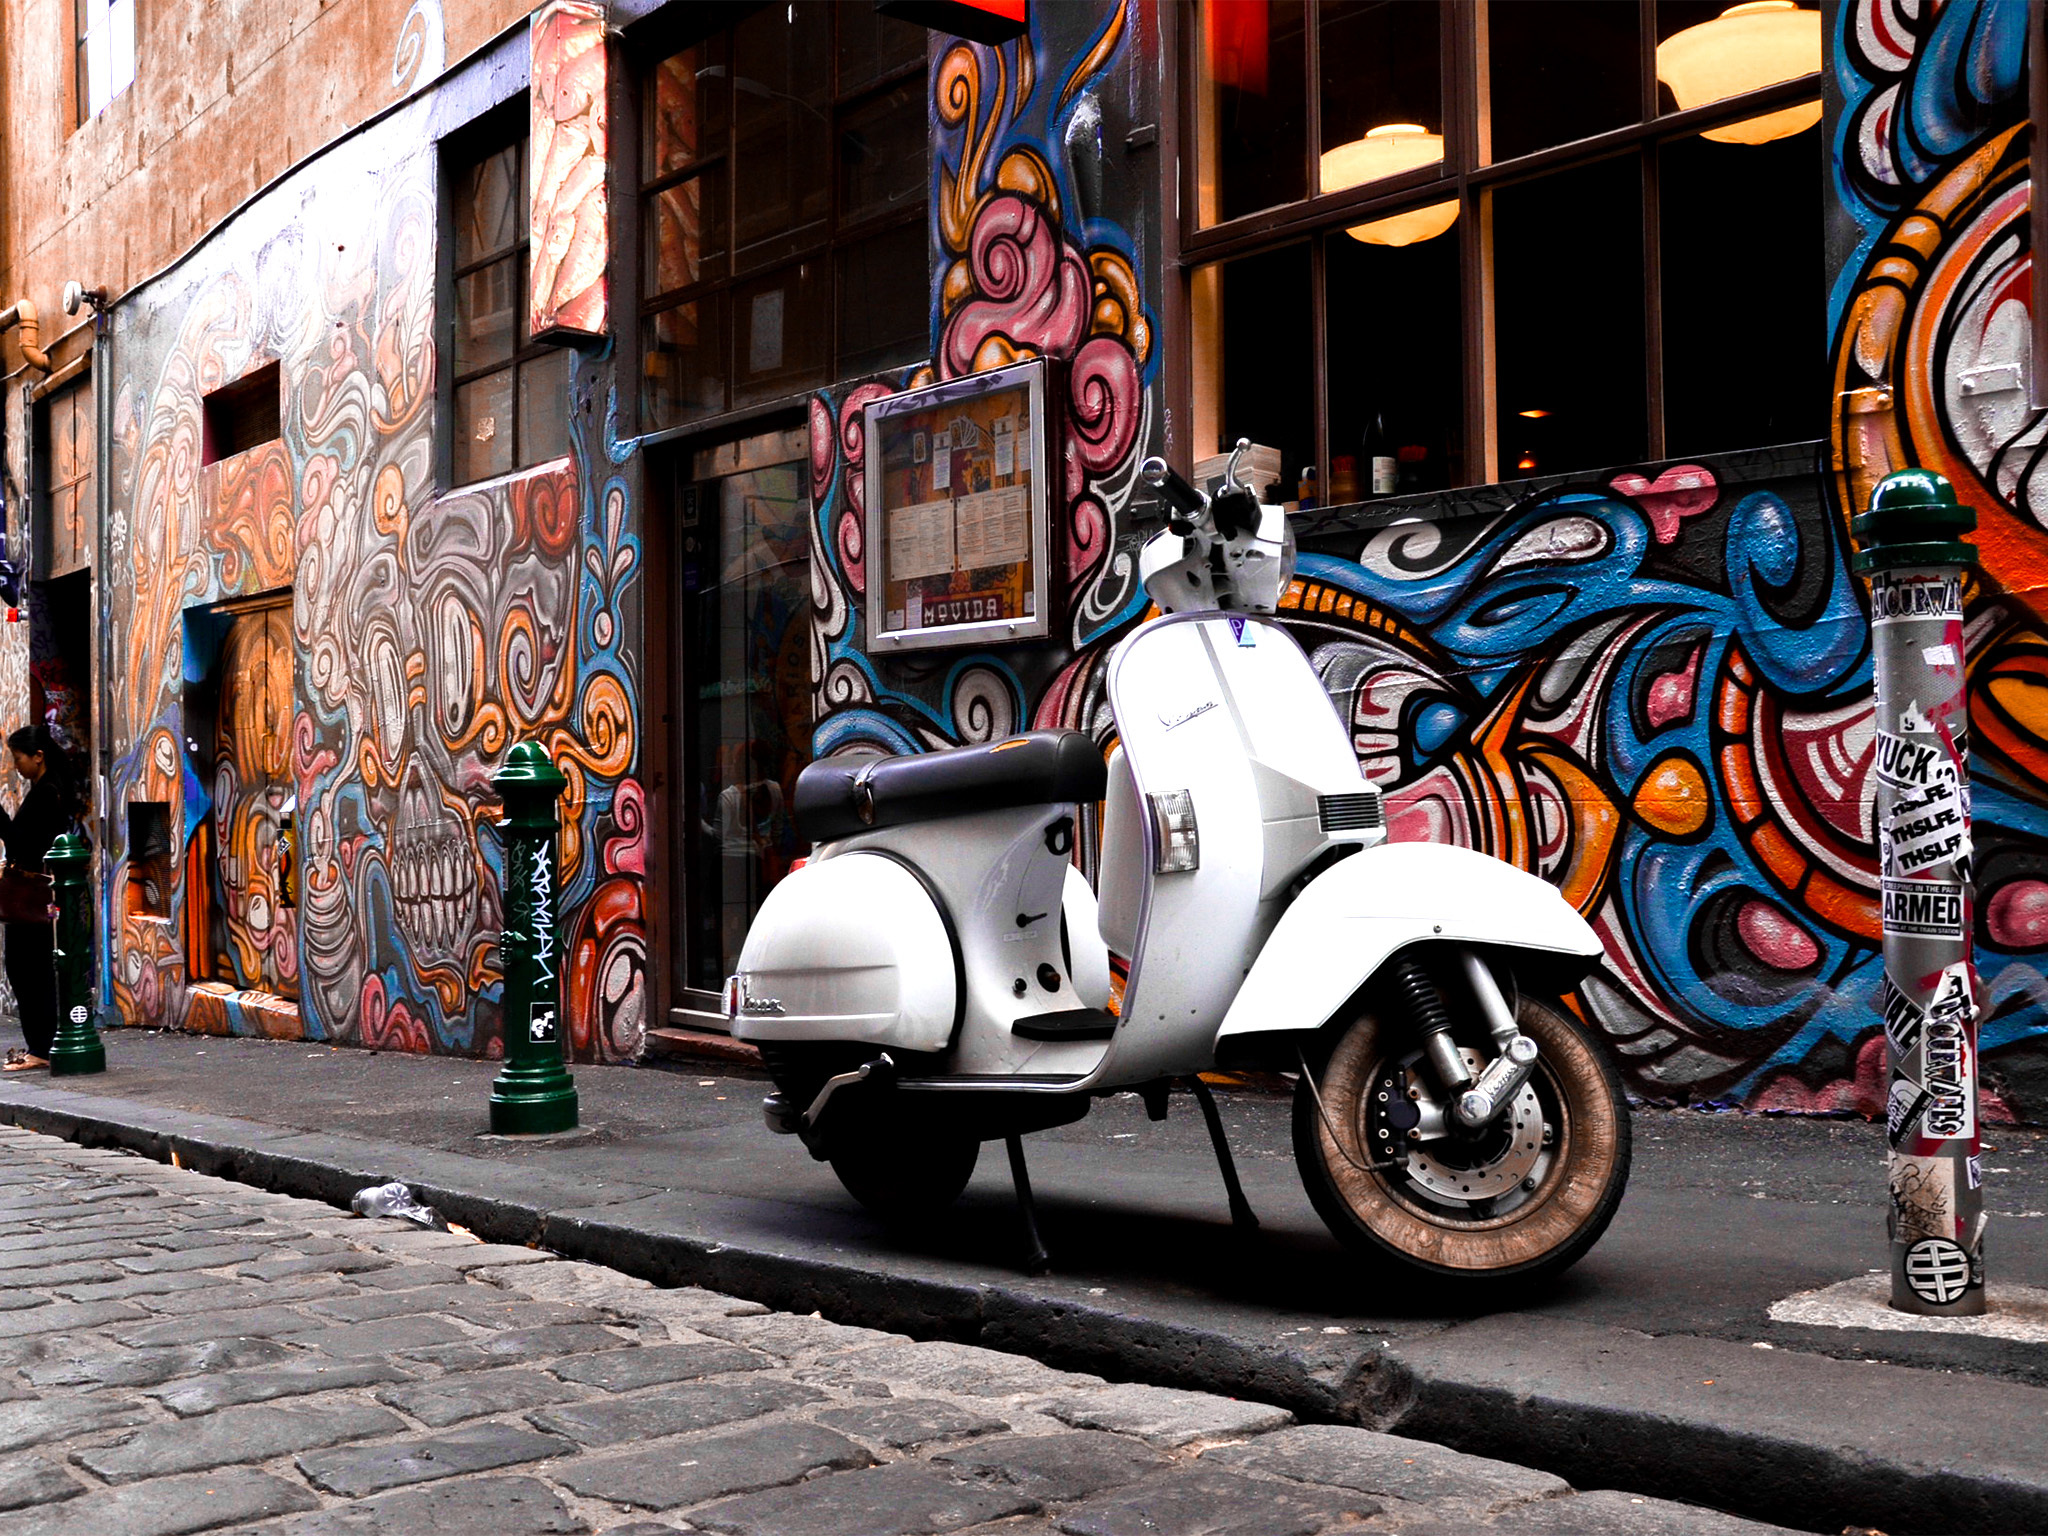 Hang with the tourists at Hosier Lane